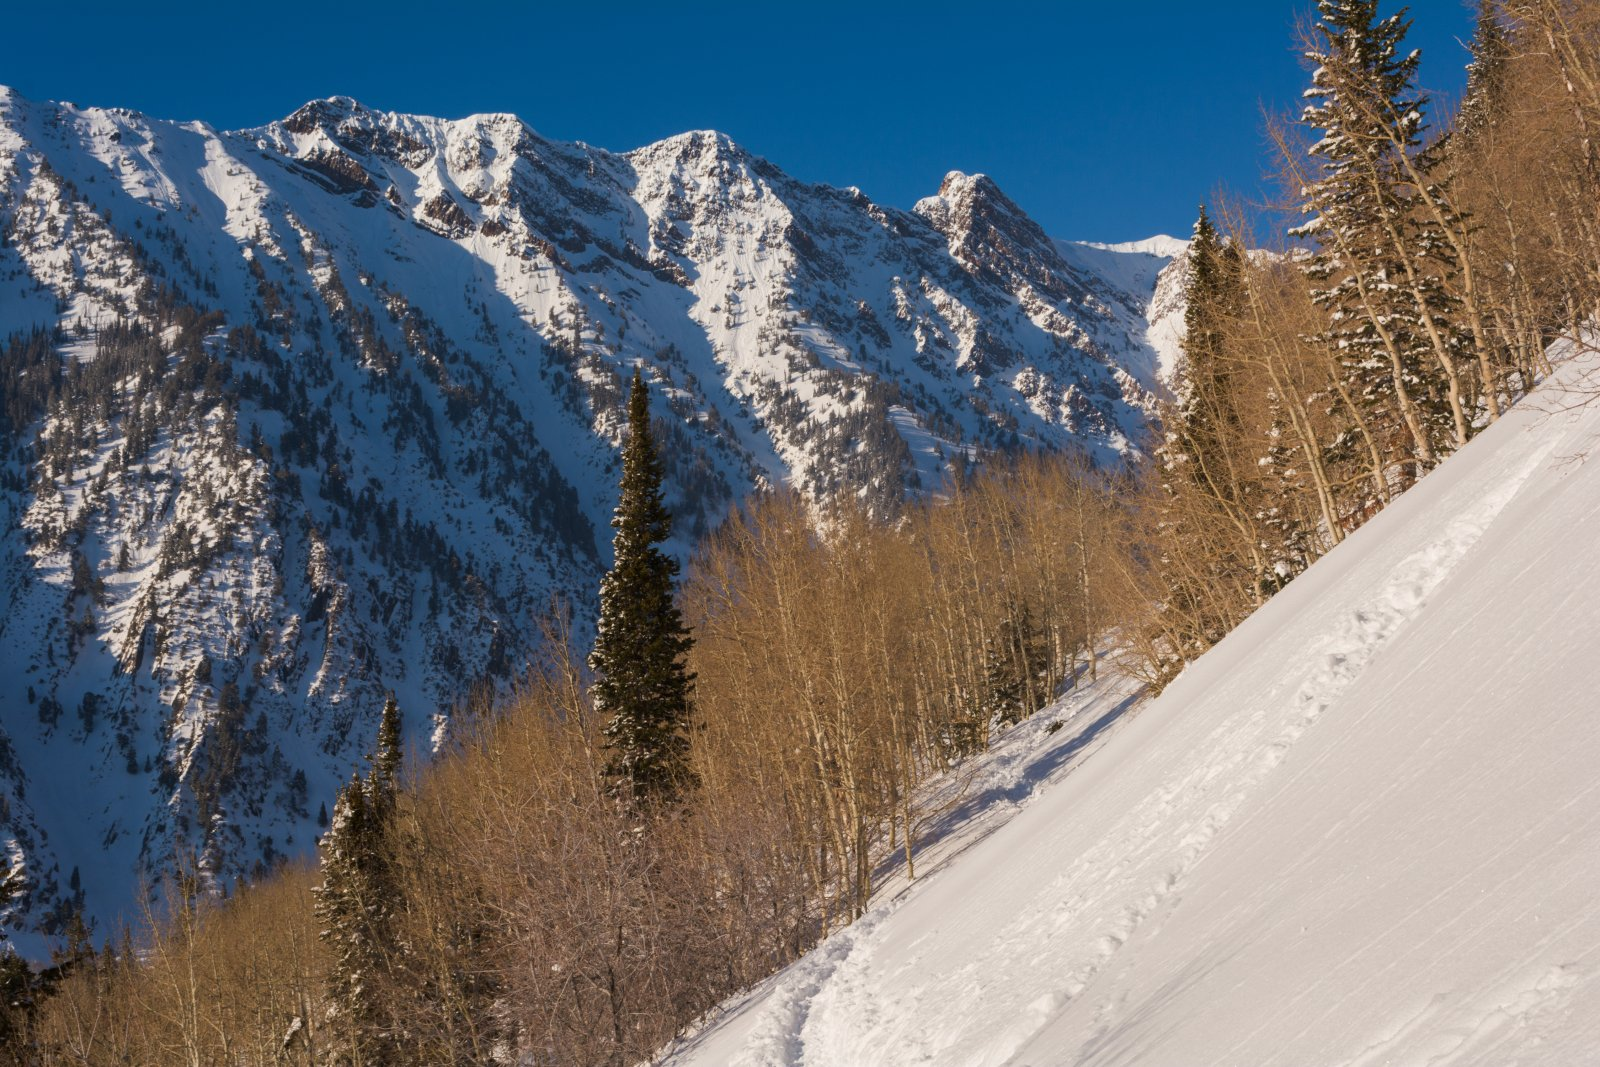 Snowshoeing With Ade0104-sm.jpg